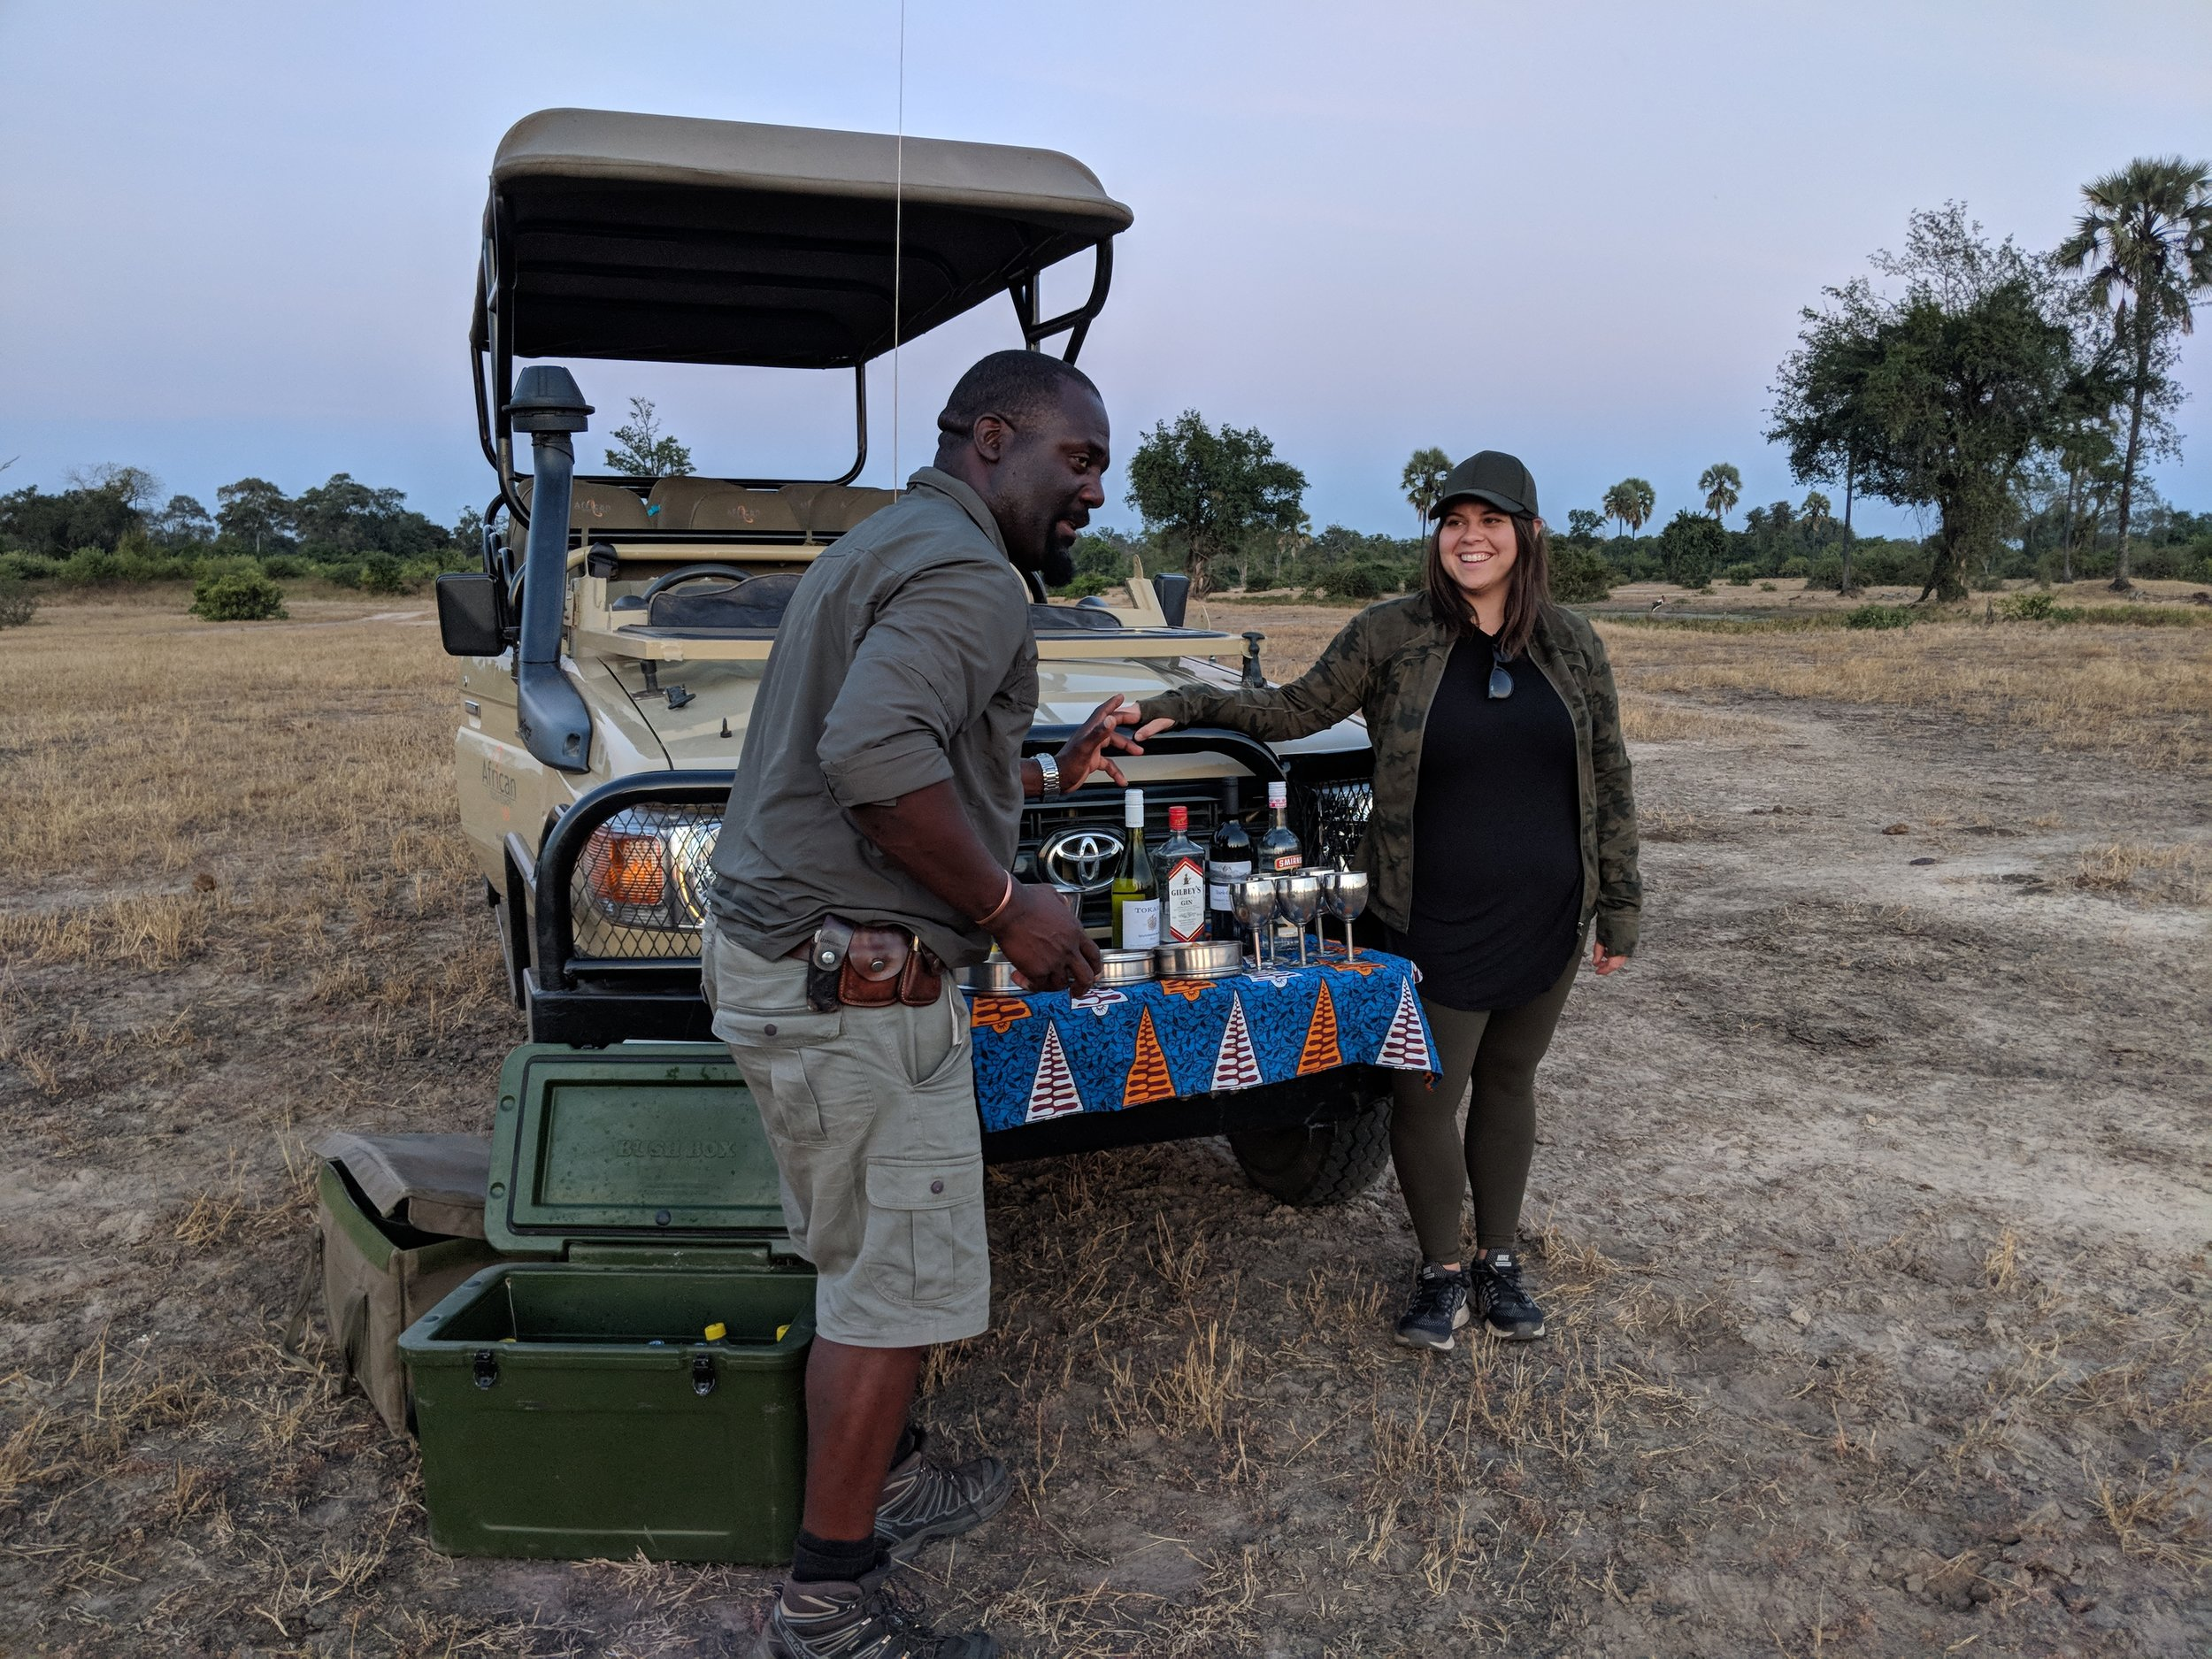 Alf, our favorite guide, setting up our sunset happy hour with the zebras (with some help from my friend, Zeen)